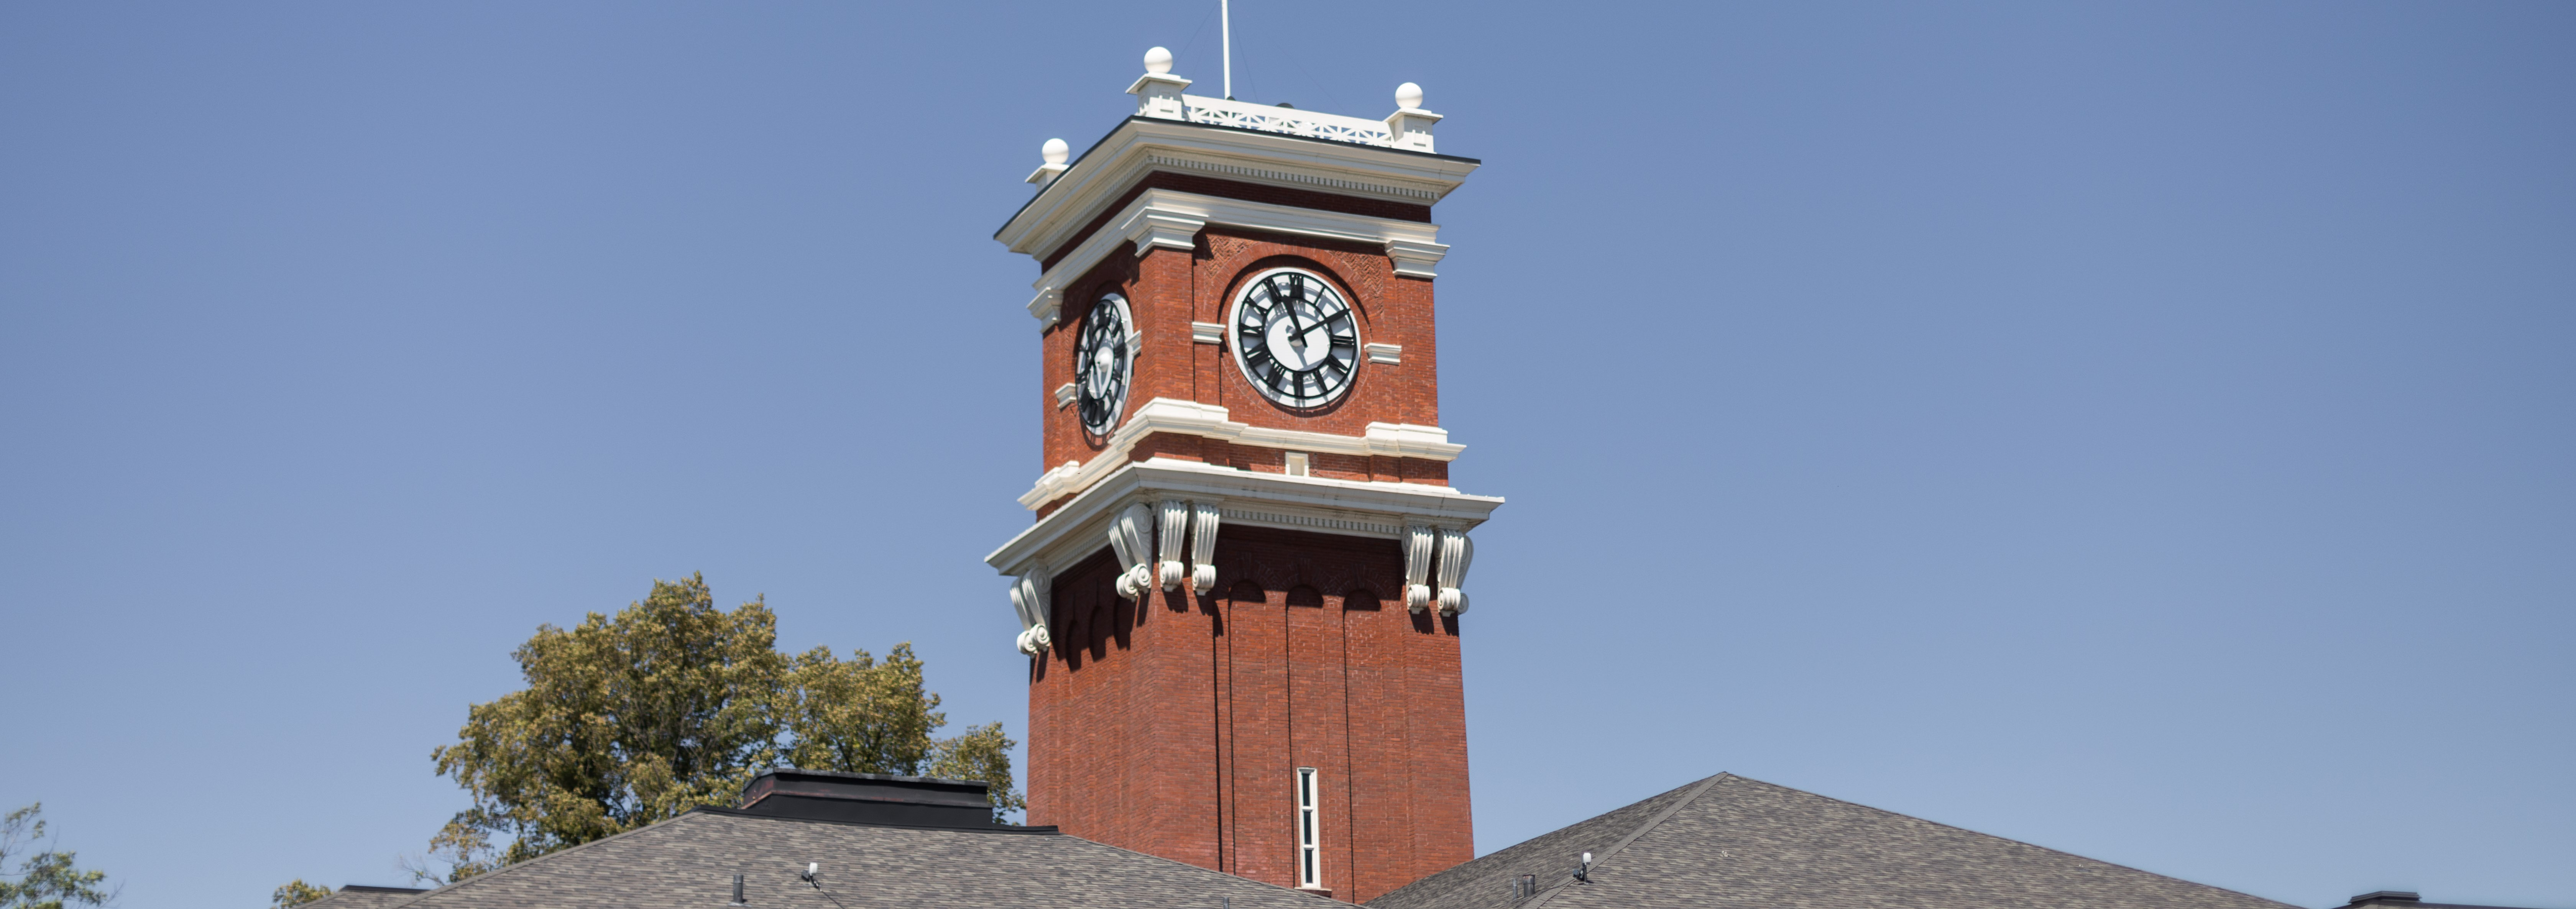 Clock tower in summer